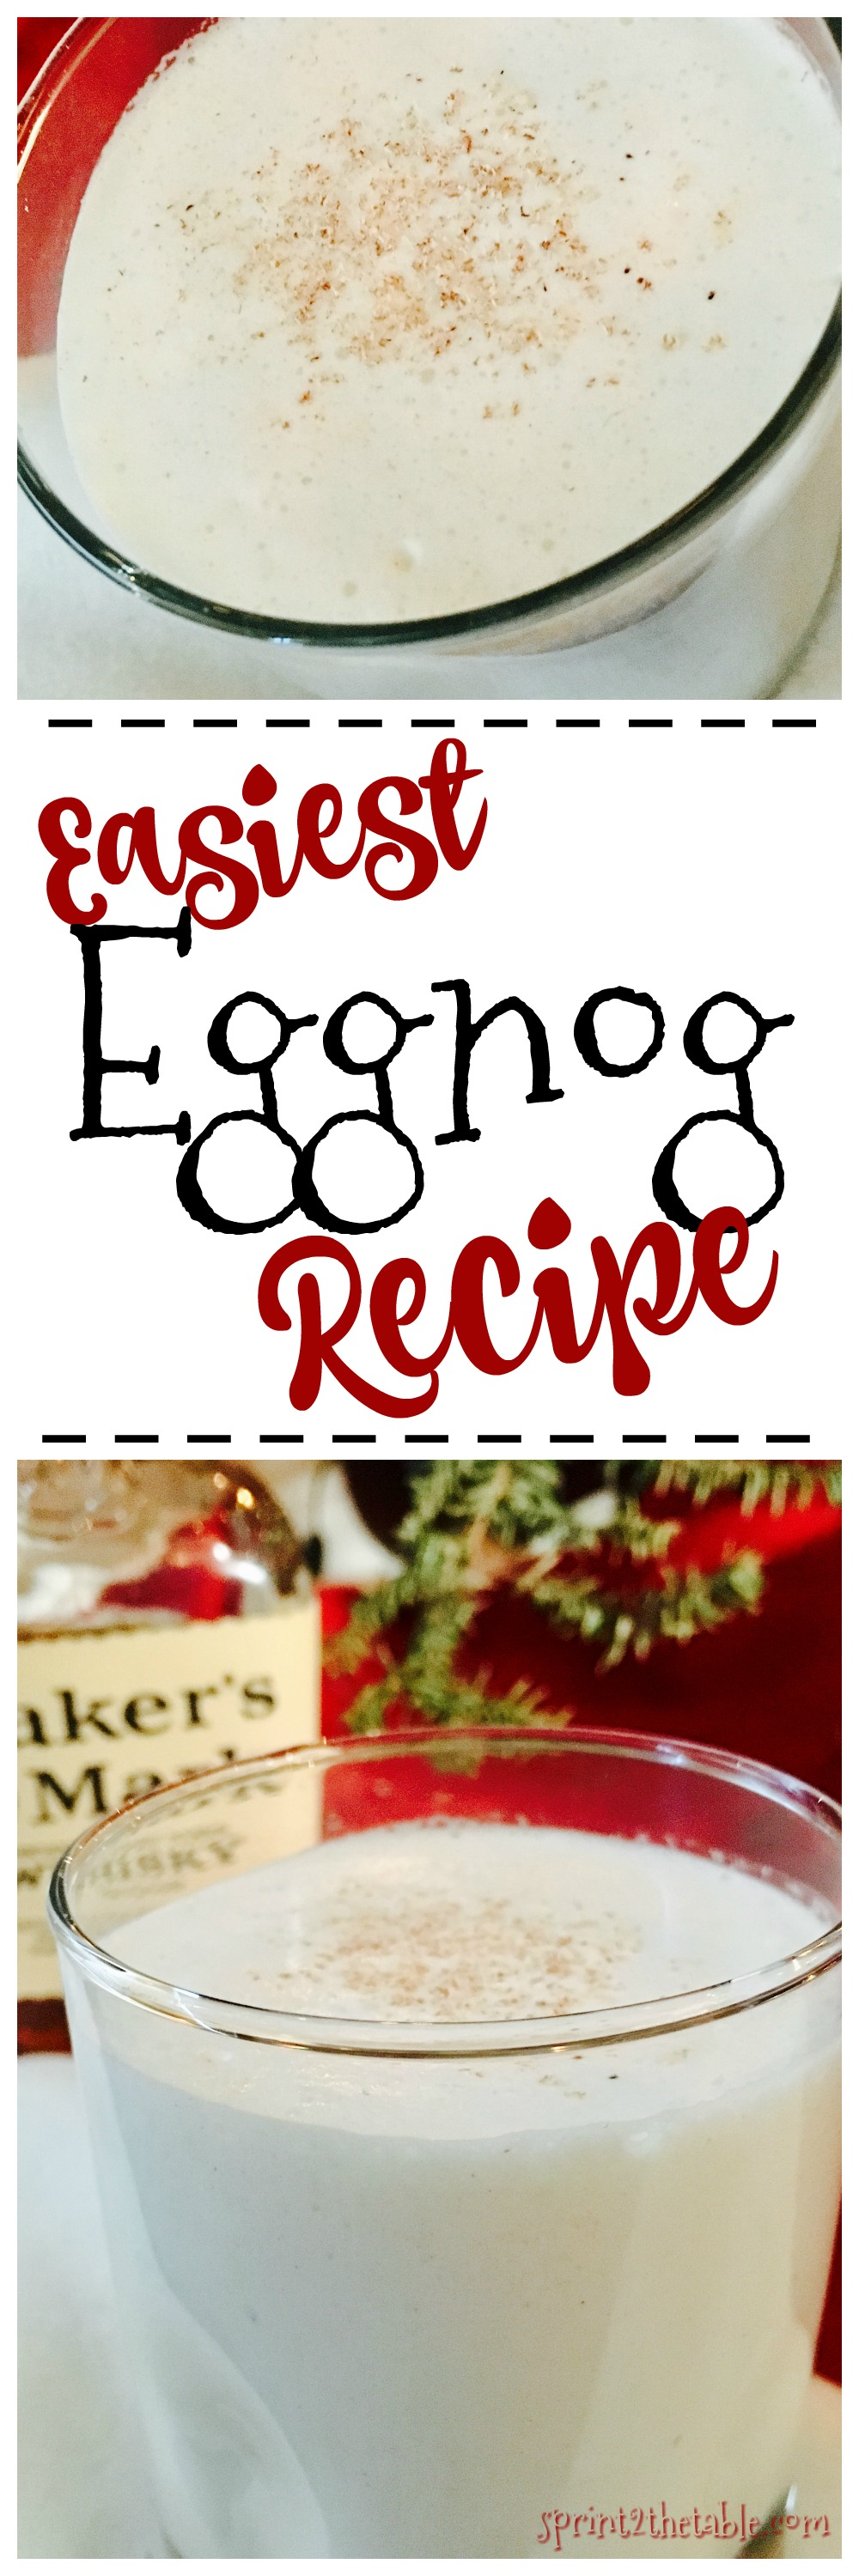 Easiest Eggnog Recipe